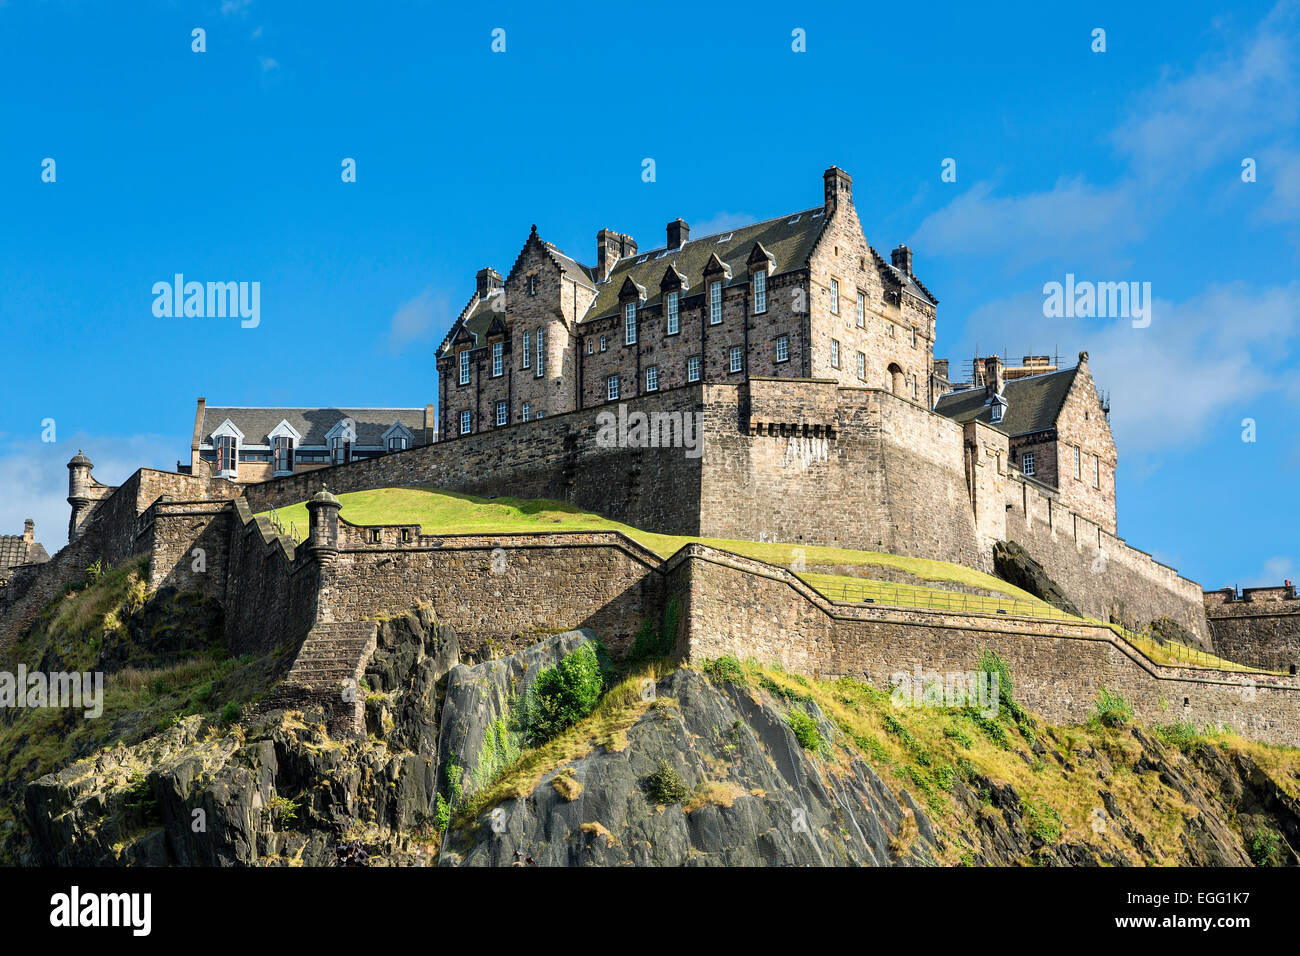 stock edinburgh castle - photo #14